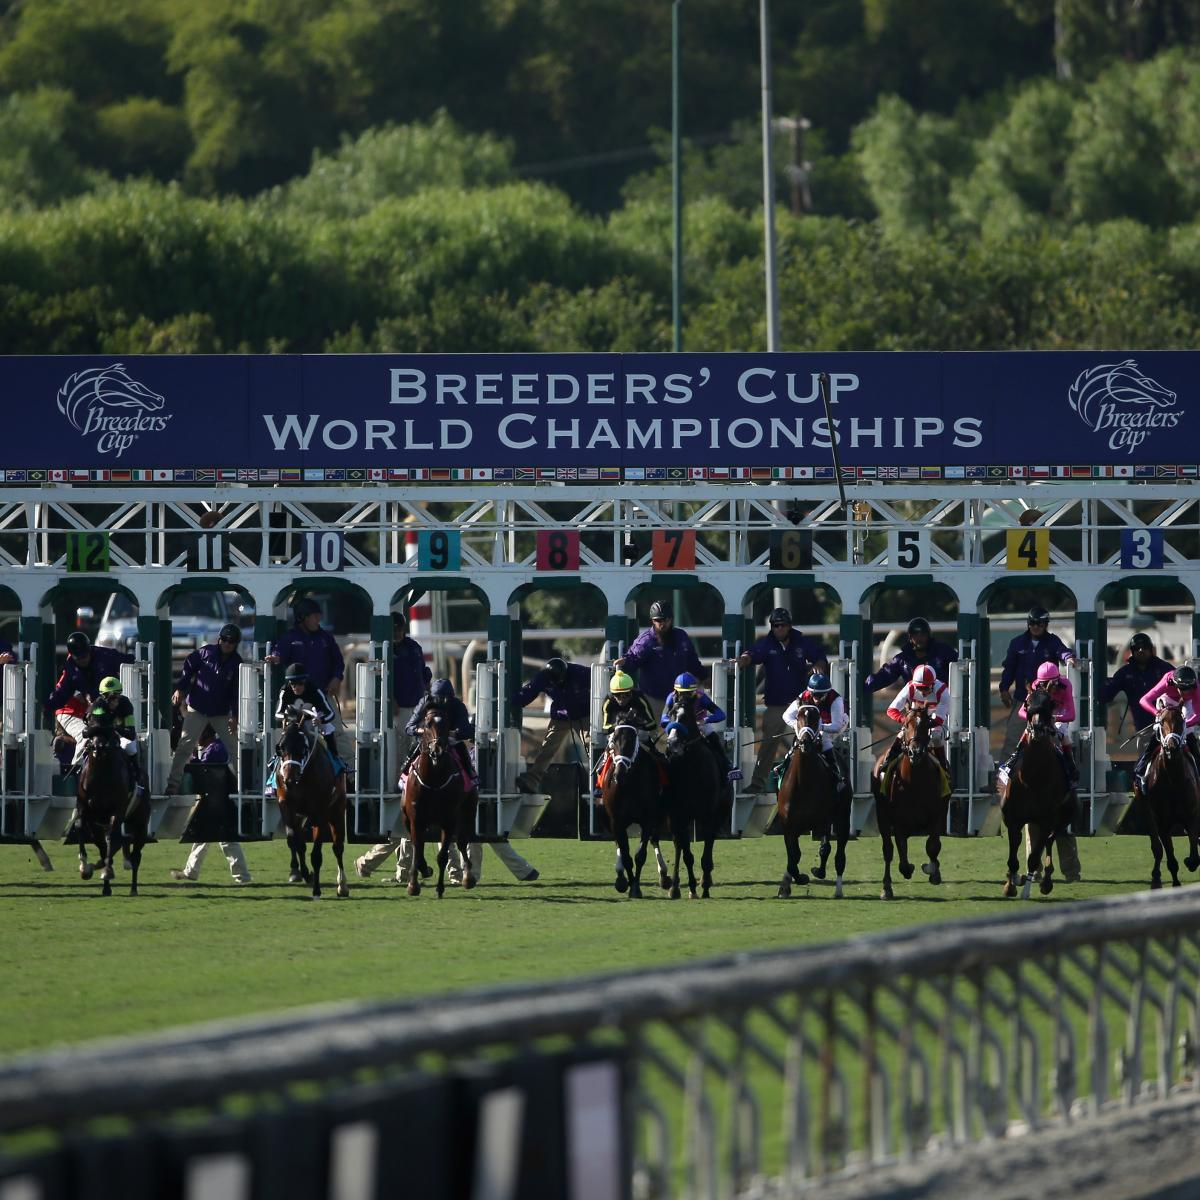 Breeders Cup 2016 Results Tracking Winners And Prize Money Payouts